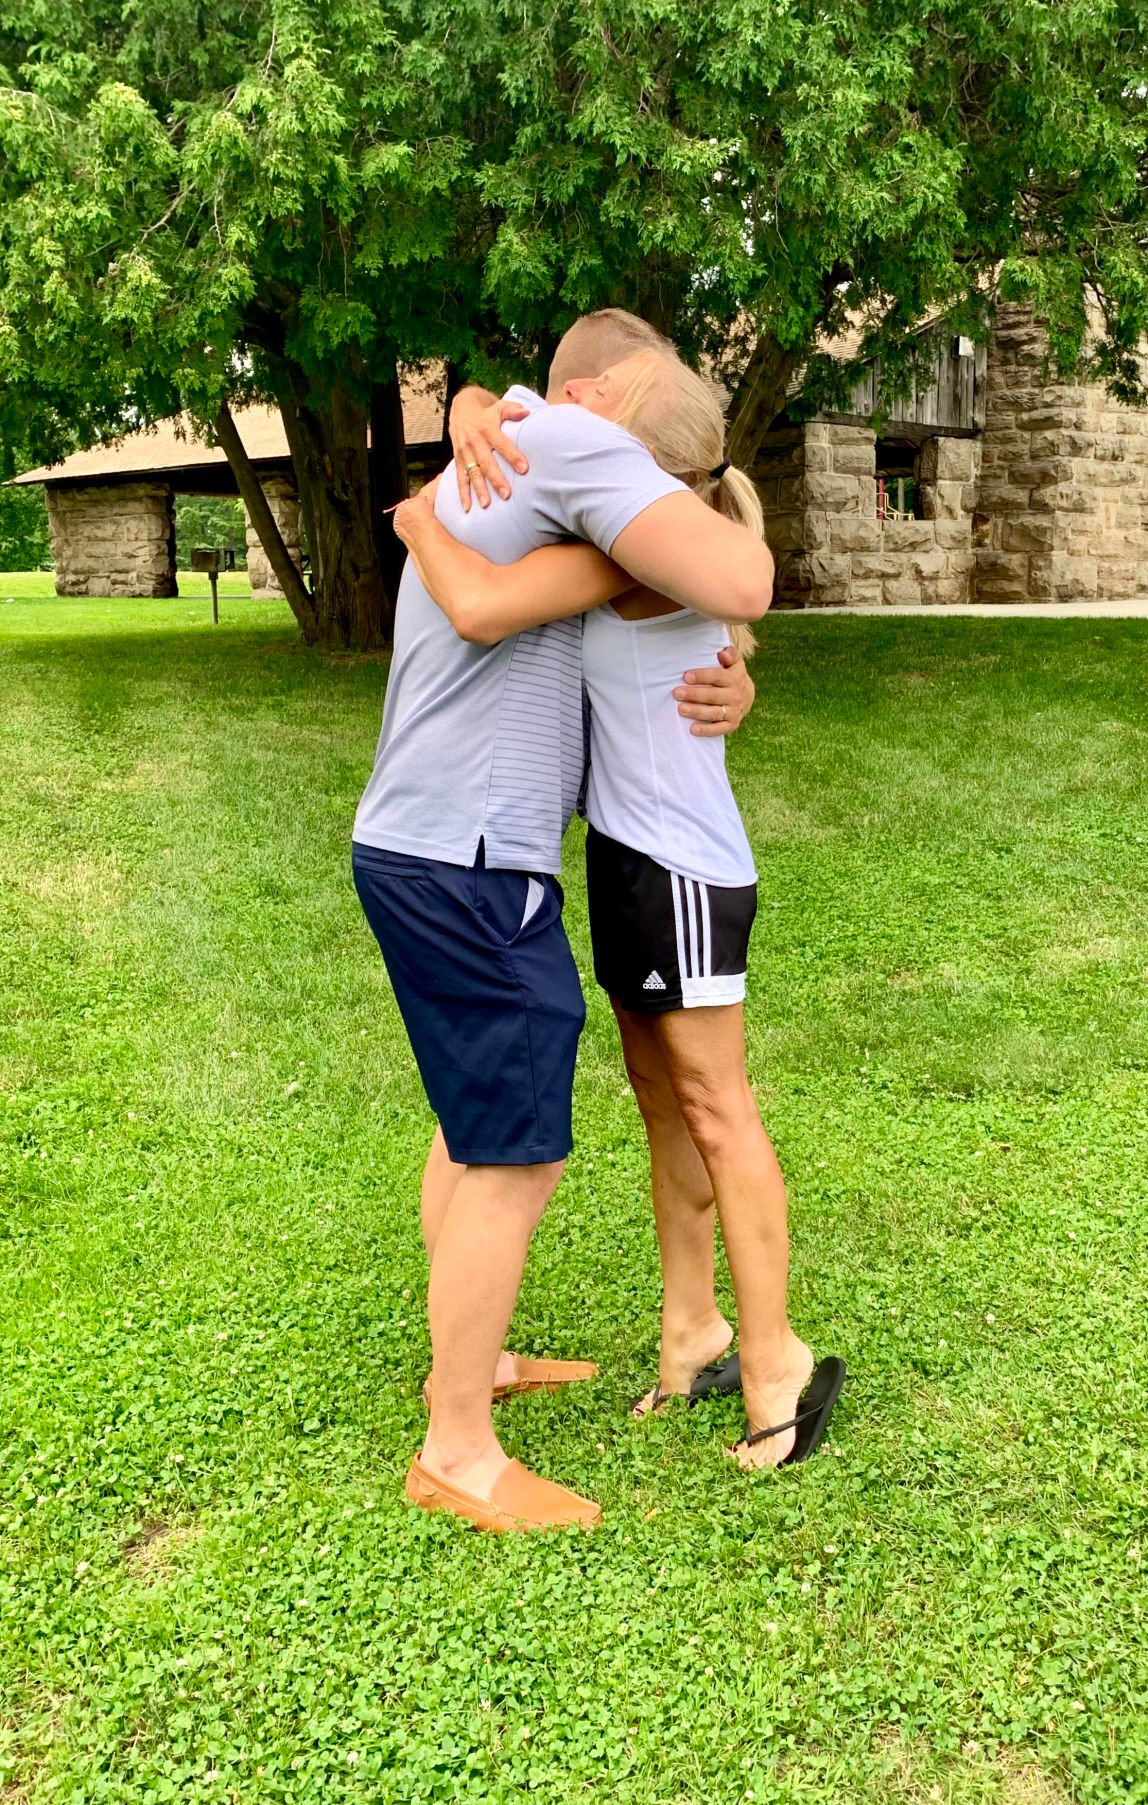 Mother and adopted son reunited: 'A surreal and crazy moment'   Winchester  Star   winchesterstar.com